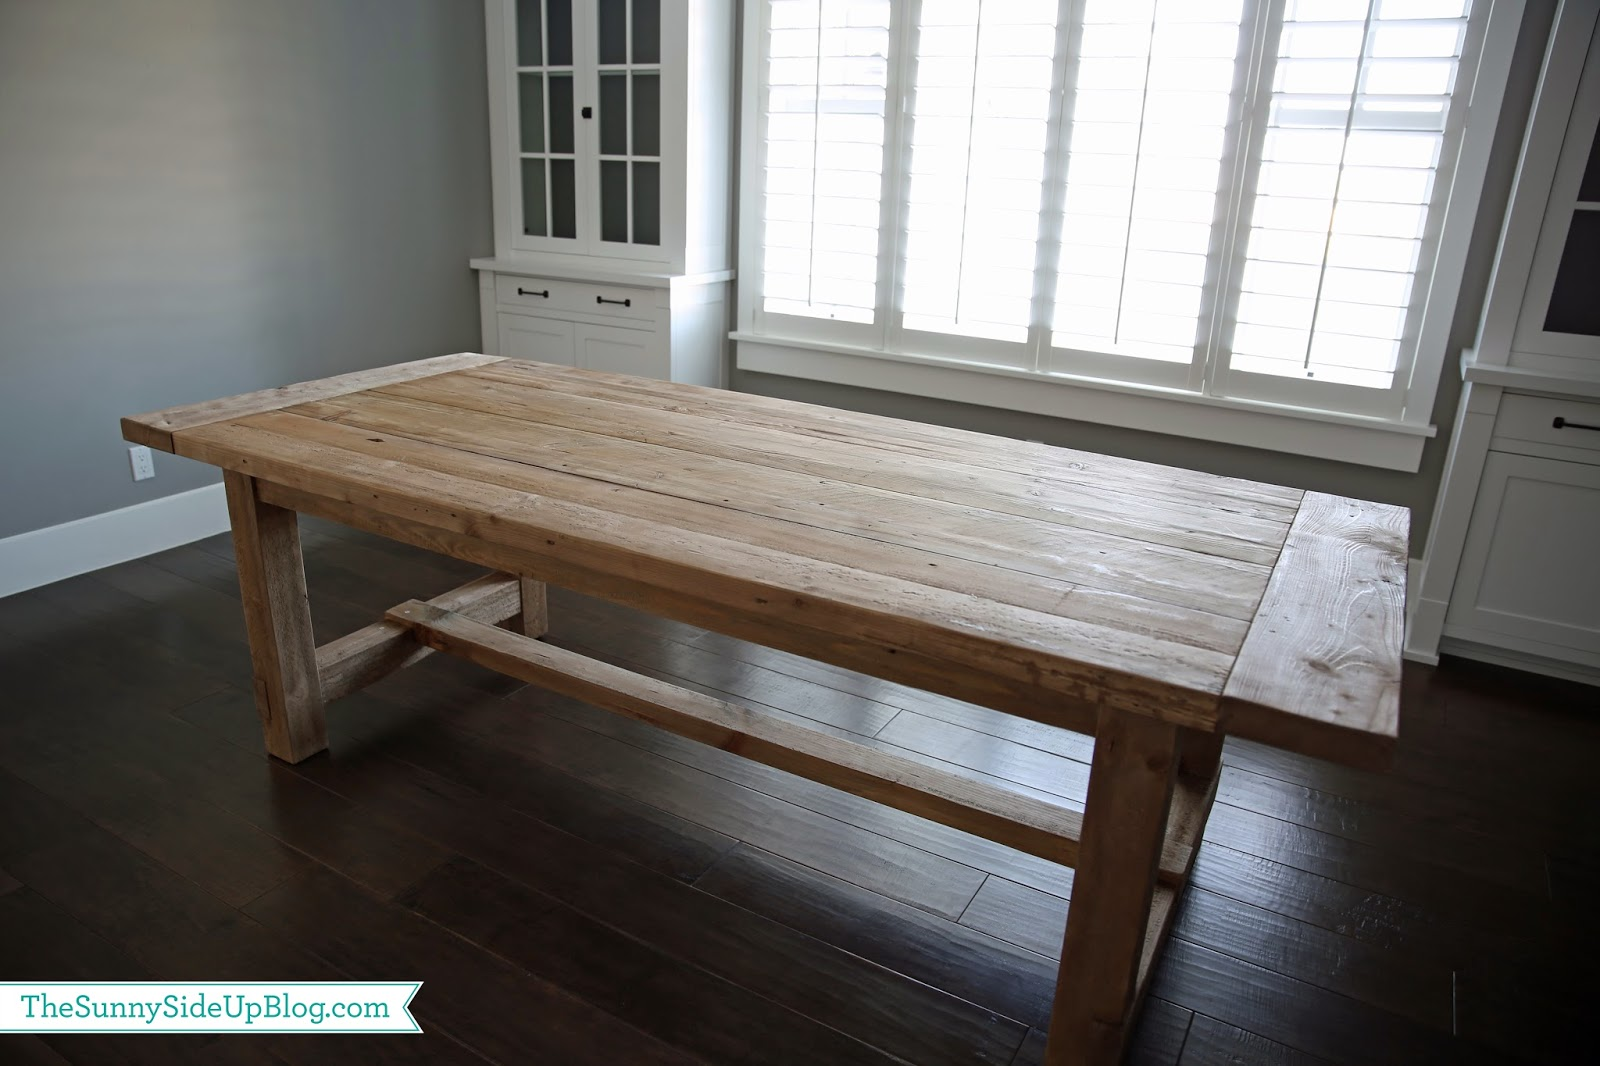 Farmhouse table restoration hardware - These Pictures Show Its True Color It S Light But Has Subtle Grey Undertones So I Think It Works Well In This Space The Wide Planks Are My Favorite